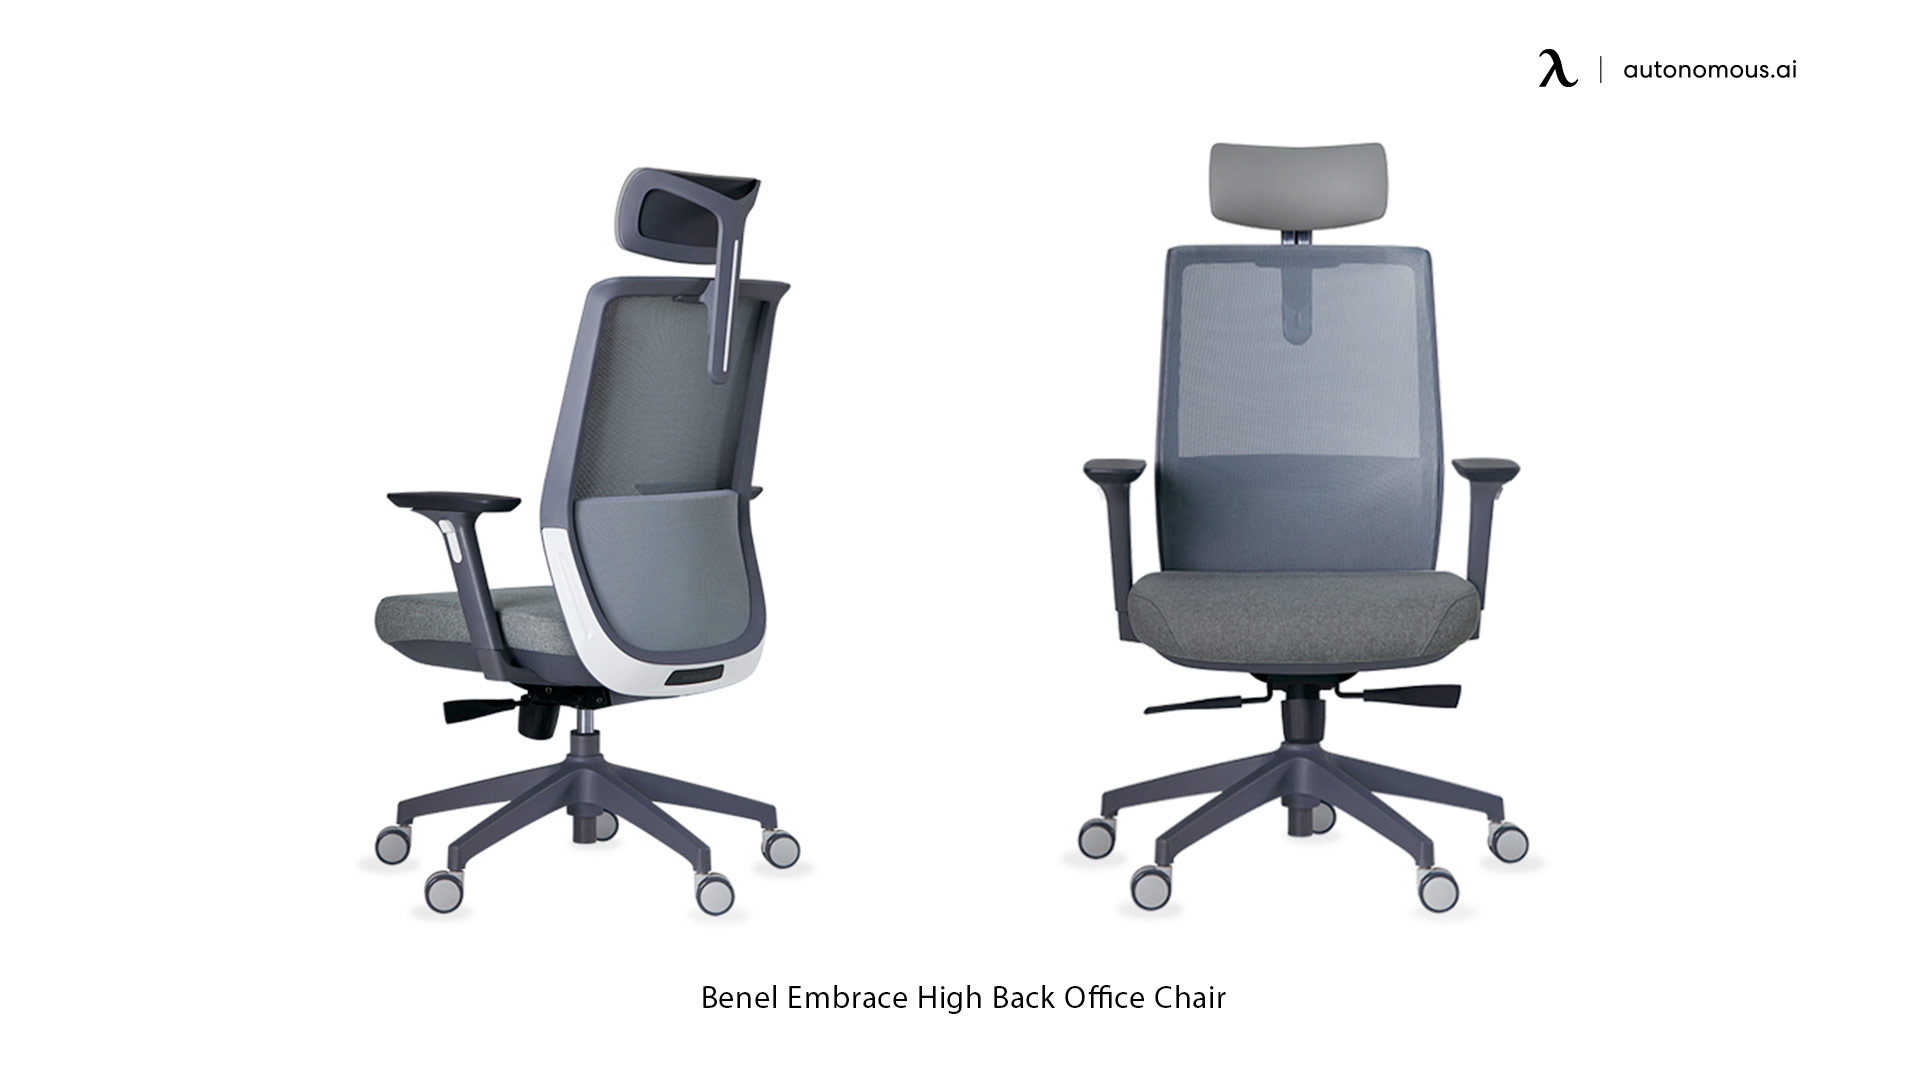 Benel Embrace High Back Office Chair